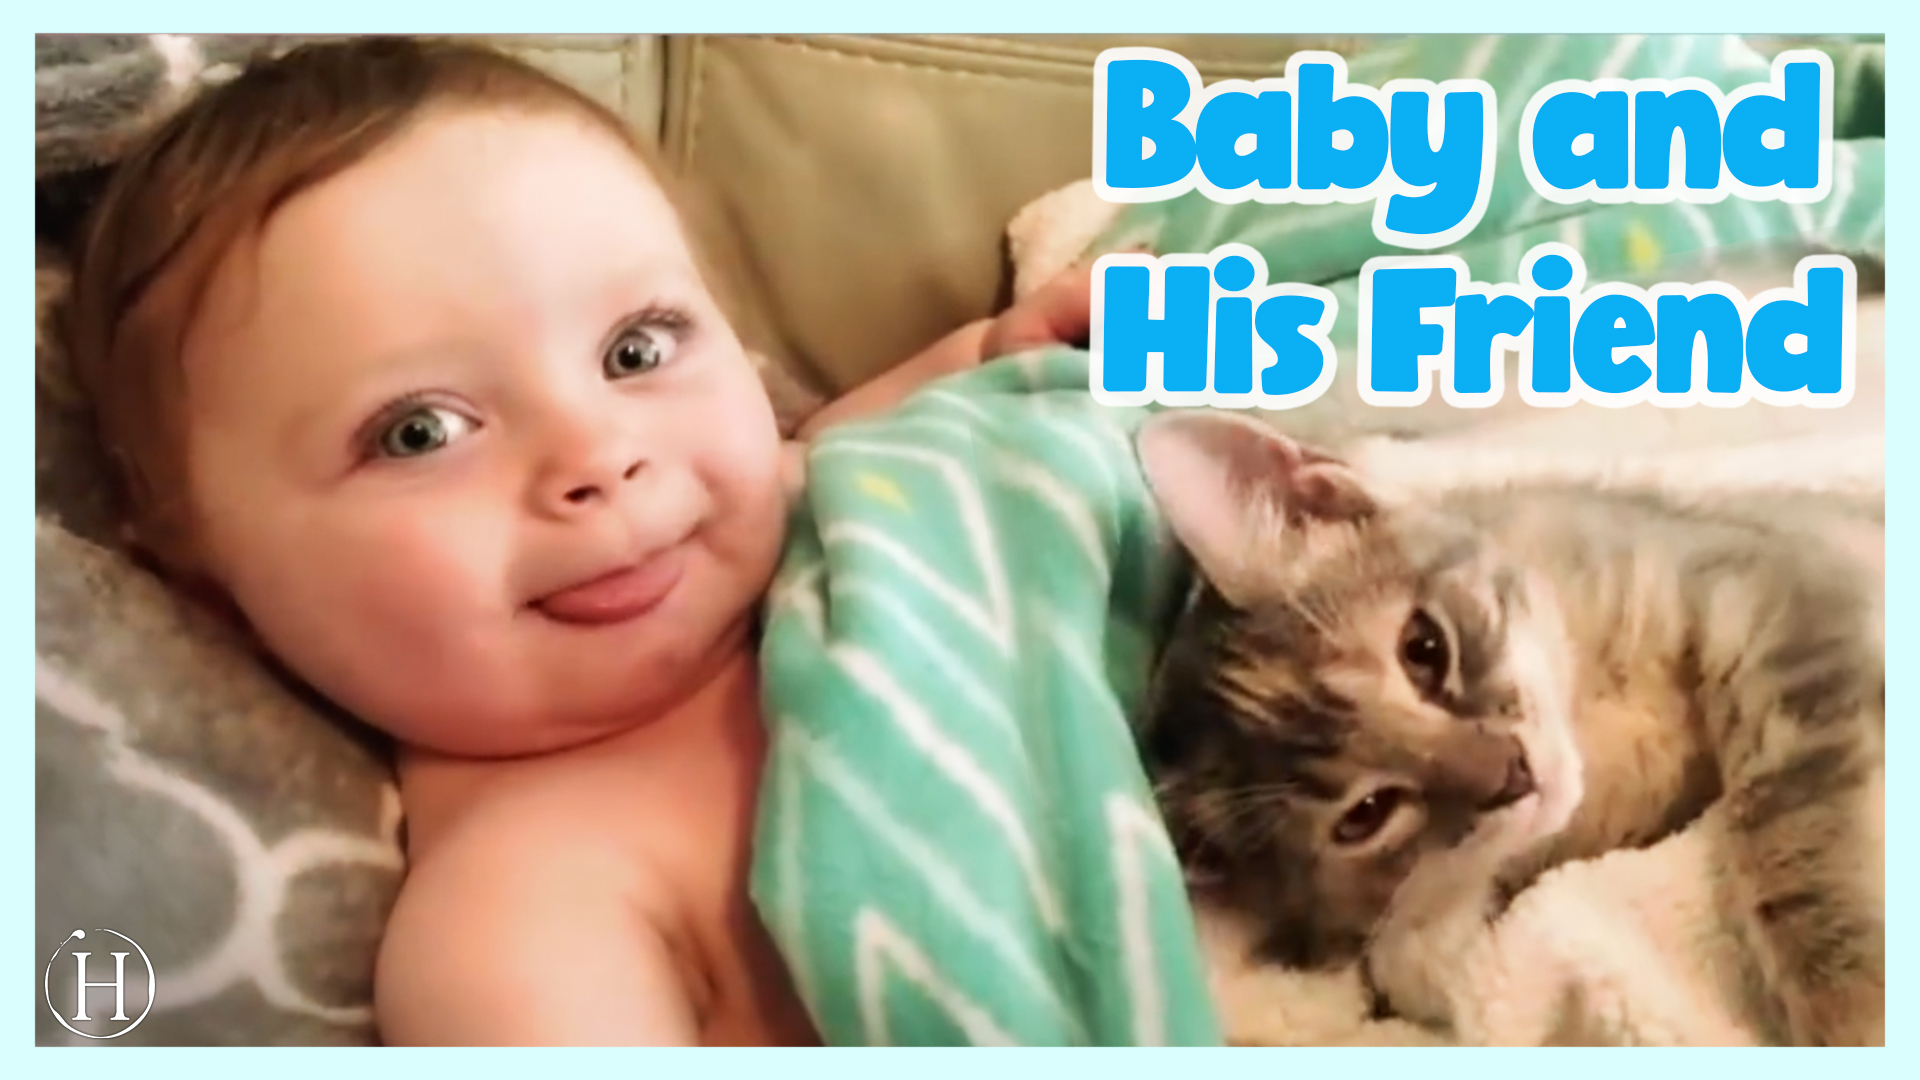 Cutest Video Ever! | Humanity Life